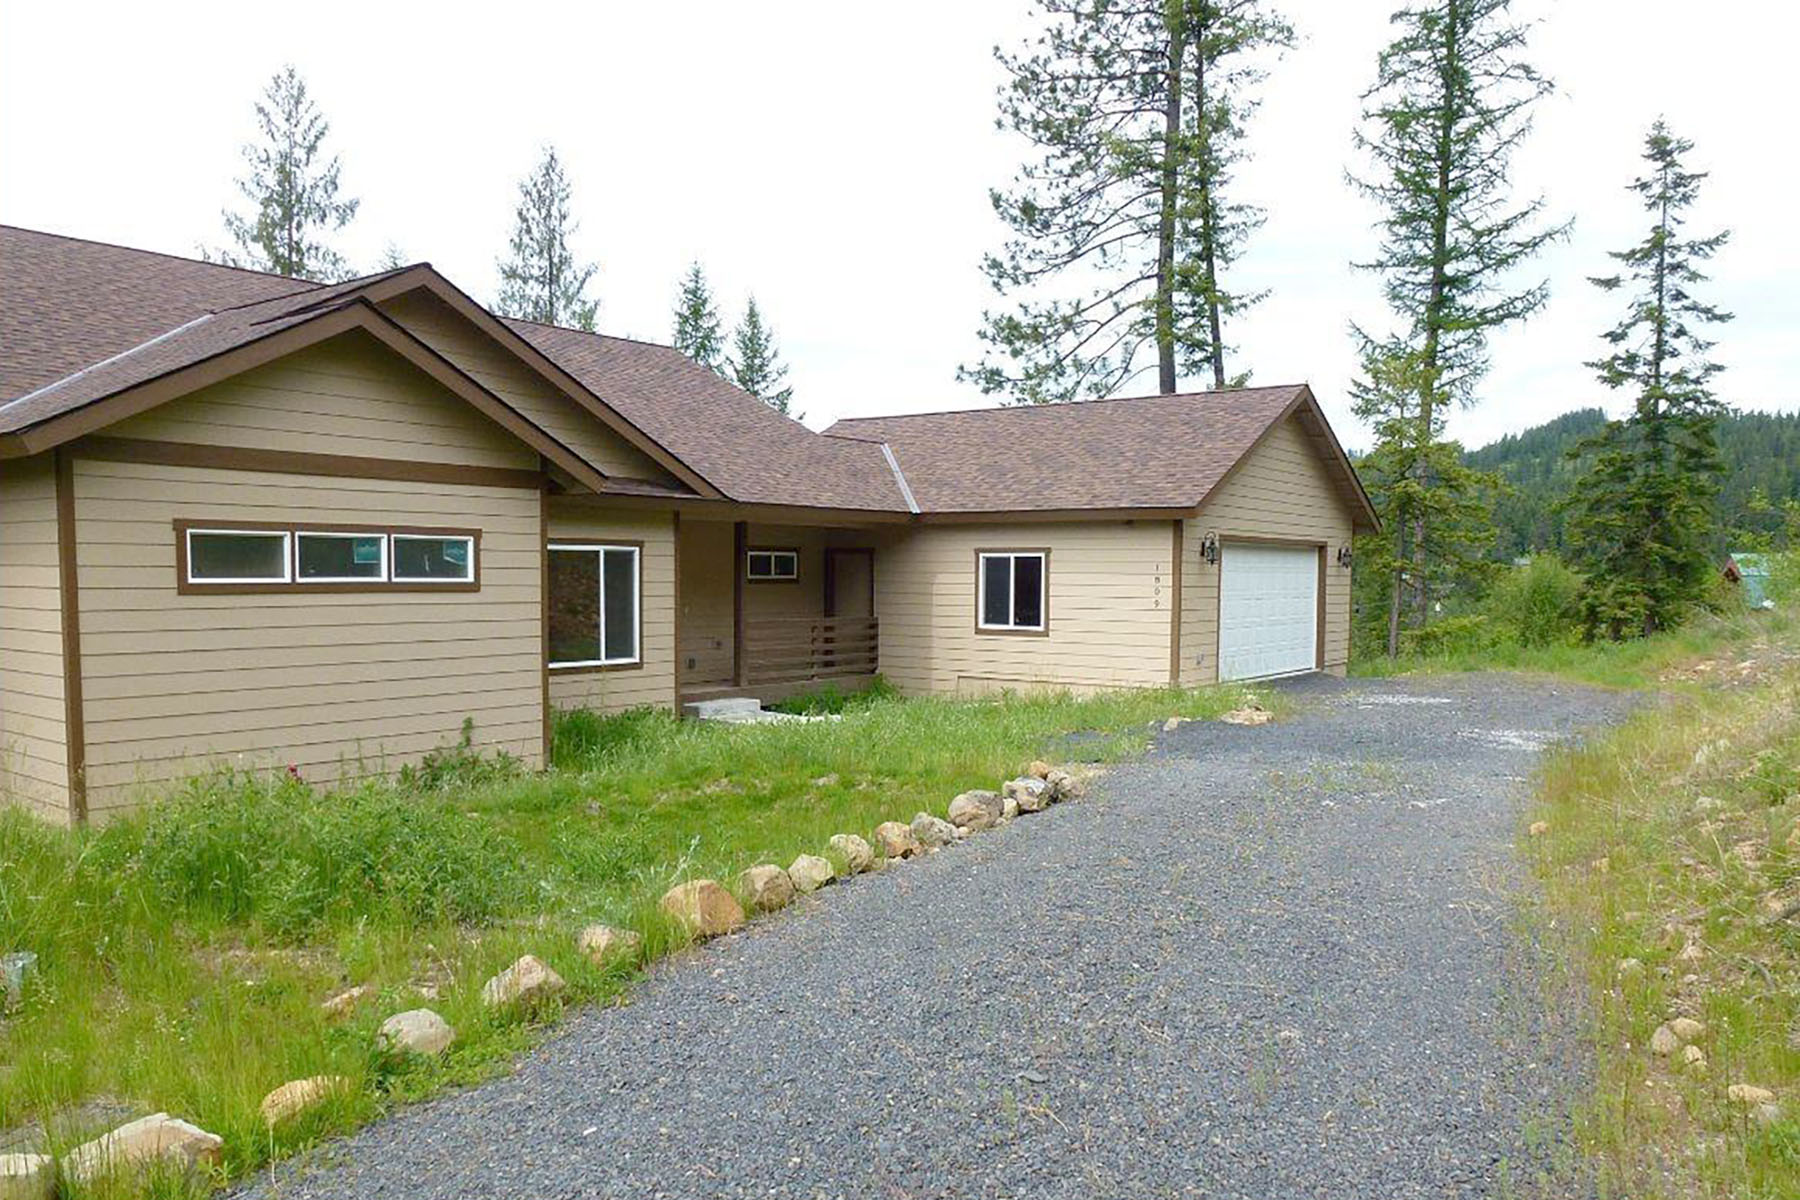 Property For Sale at New construction with great views of Coeur d' Alene Lake